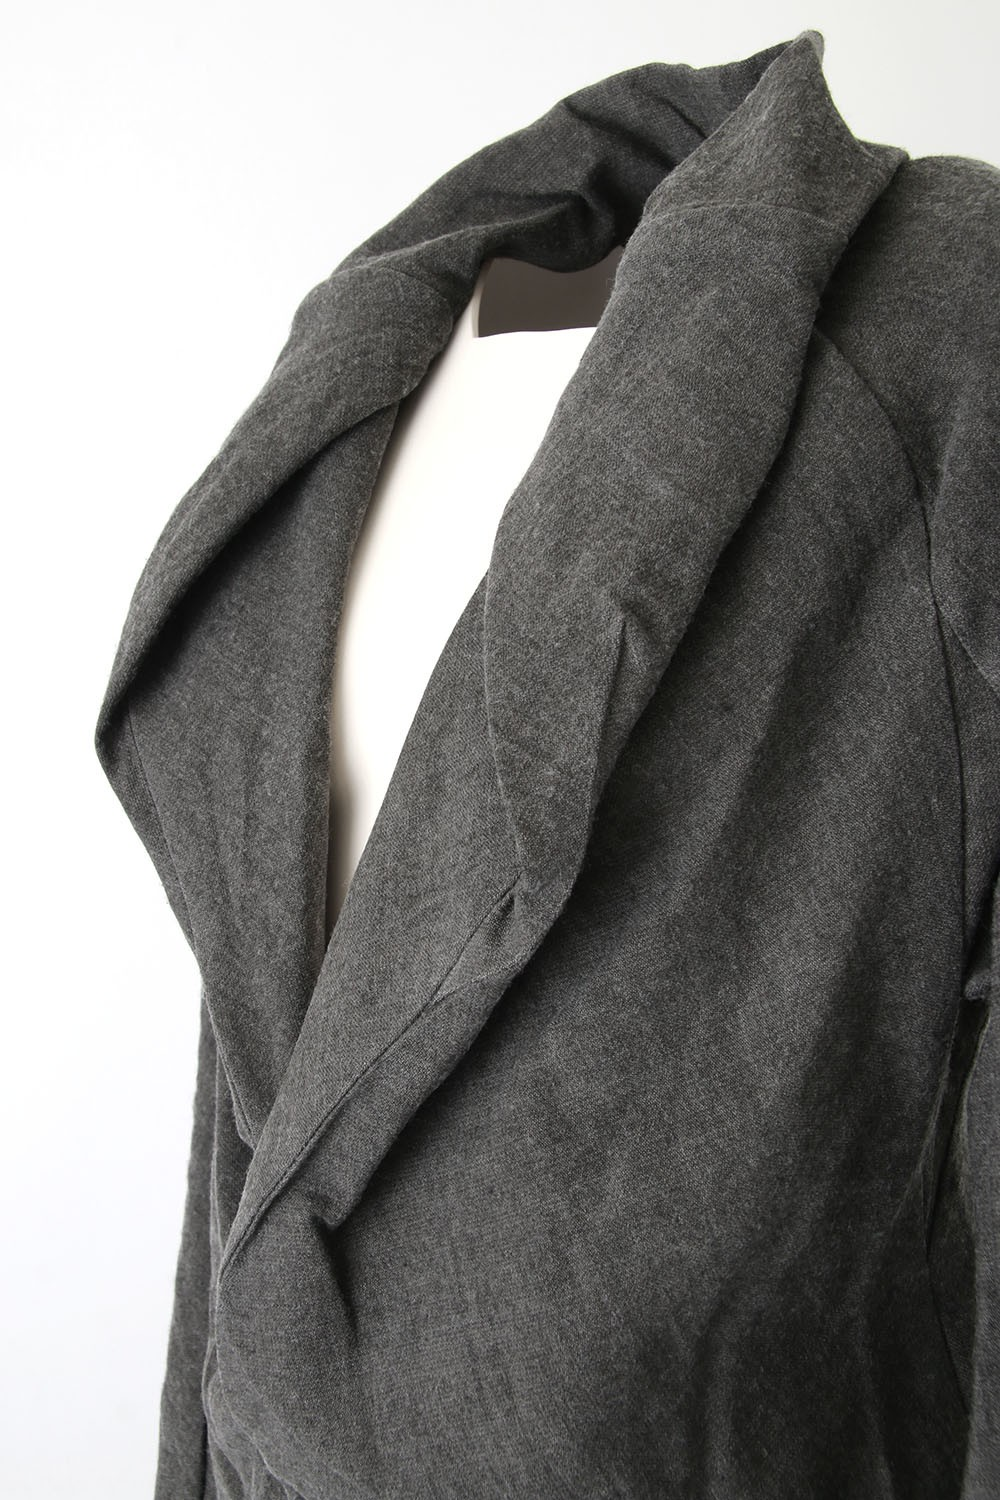 Wool Linen Cotton Washed Cloth Jacket - 06-J02